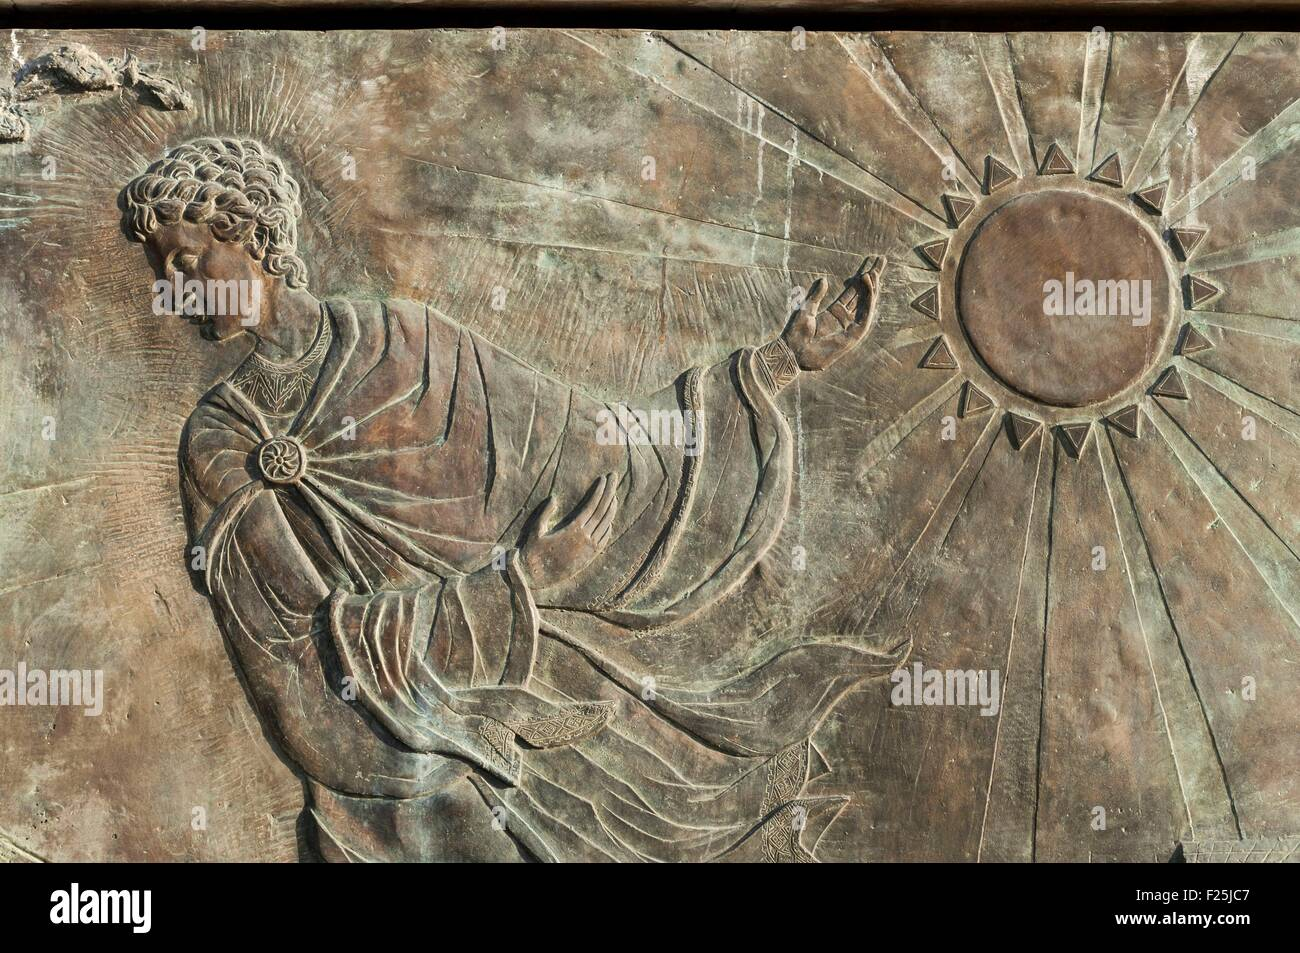 Macedonia, Skopje, detail of a bas relief under statue in dowtown, similar to the national flag sun - Stock Image